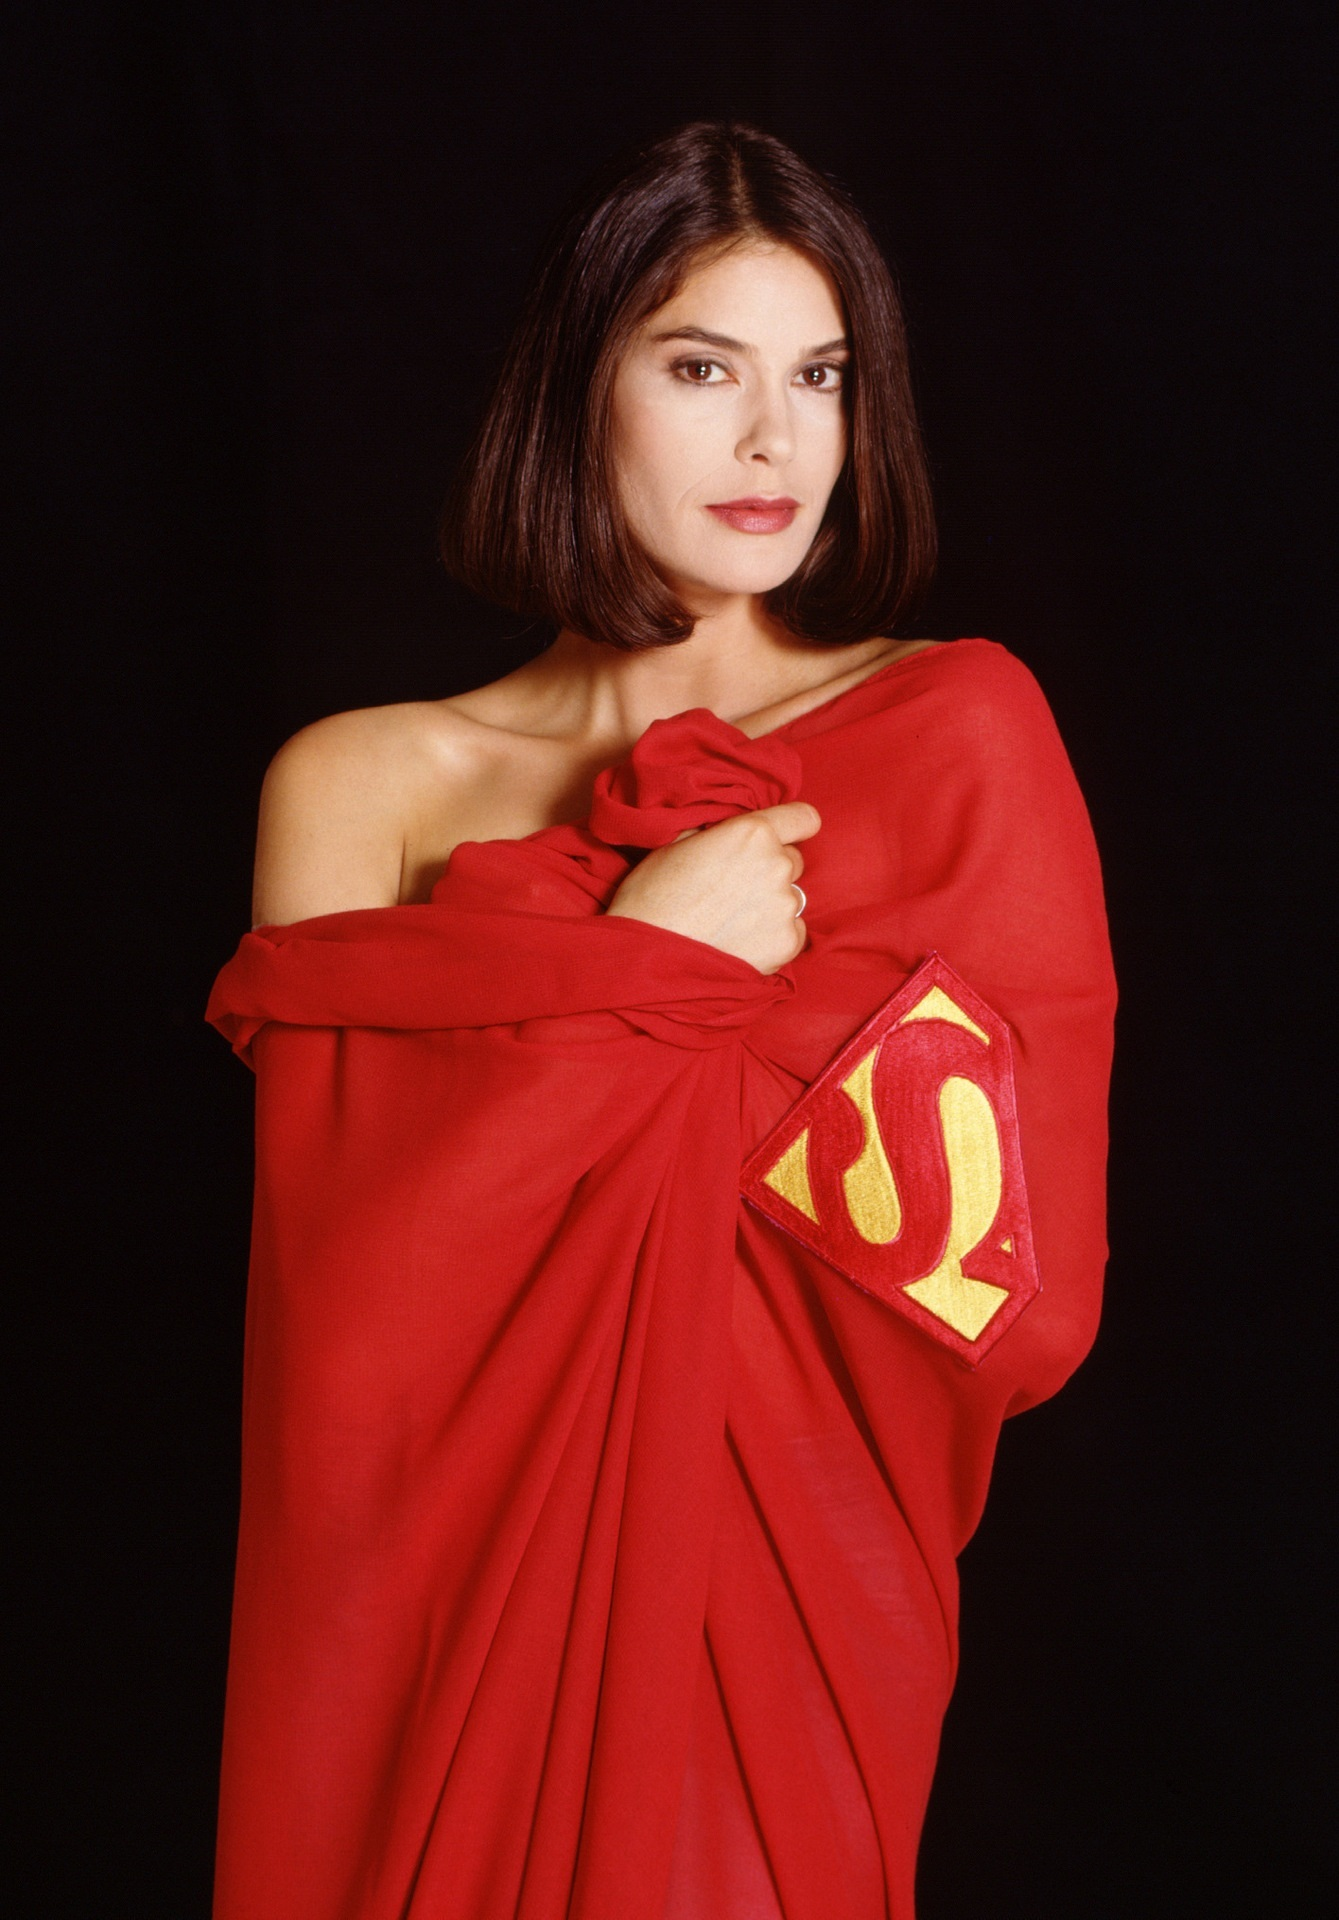 Lois Lois And Clark Teri Hatcher Superman